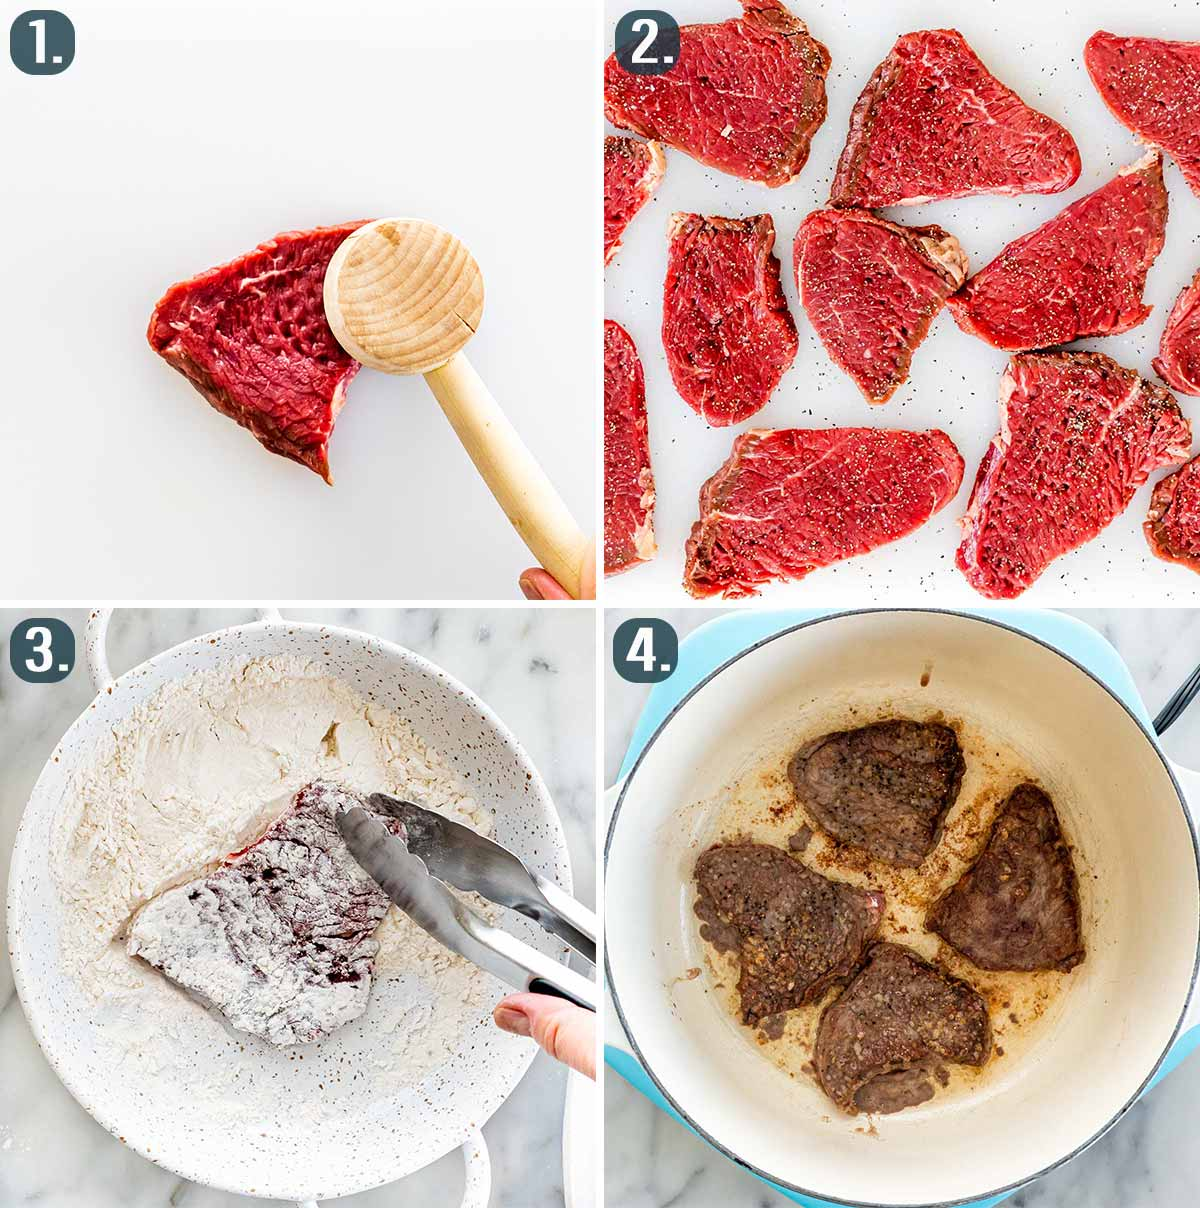 process shots showing how to prep steak for swiss steak.